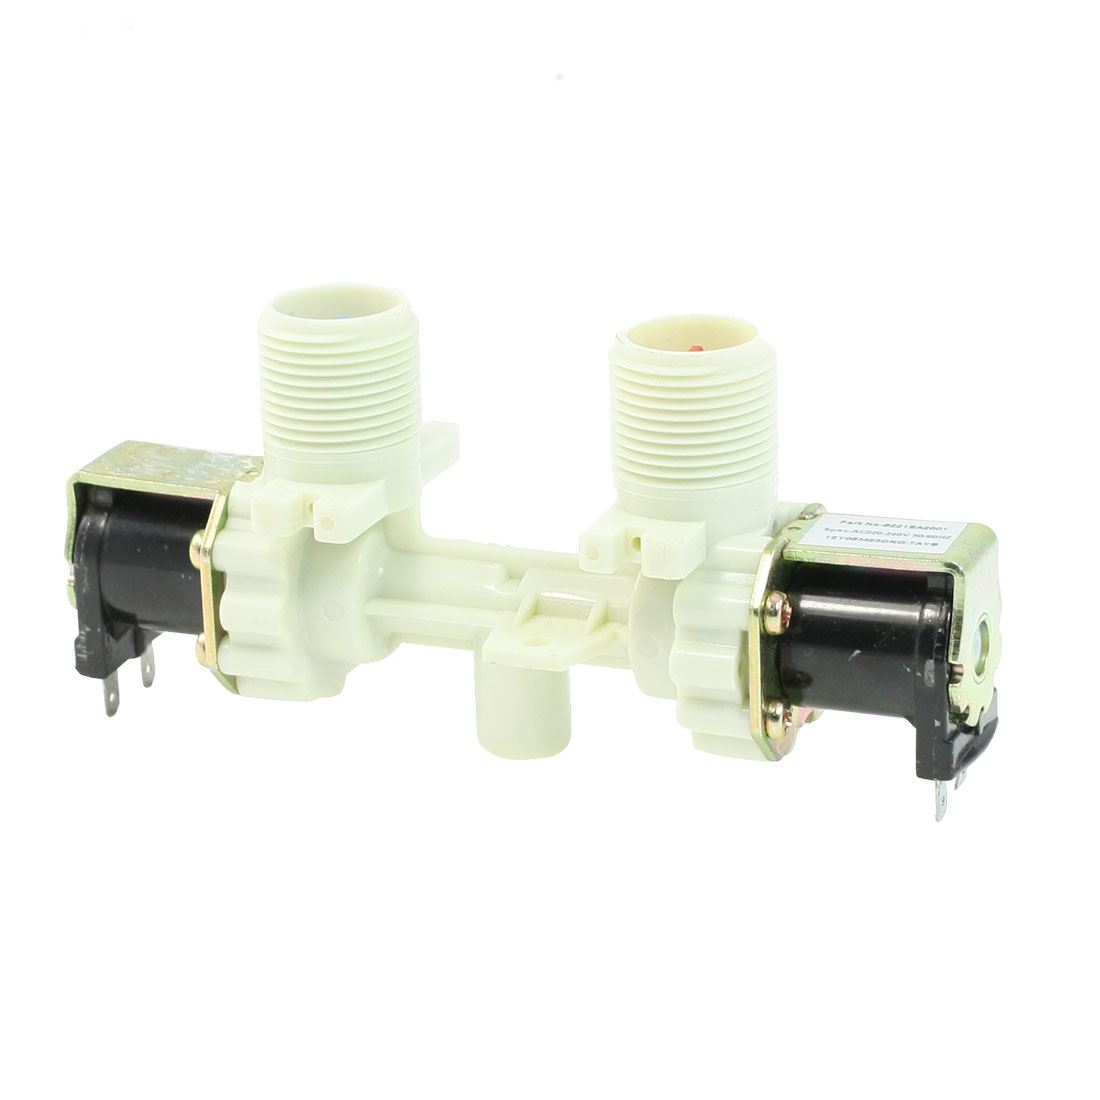 "AC220-240V 3/4"" PT Dual Head Water Inlet Solenoid Valve for Washing Machine"